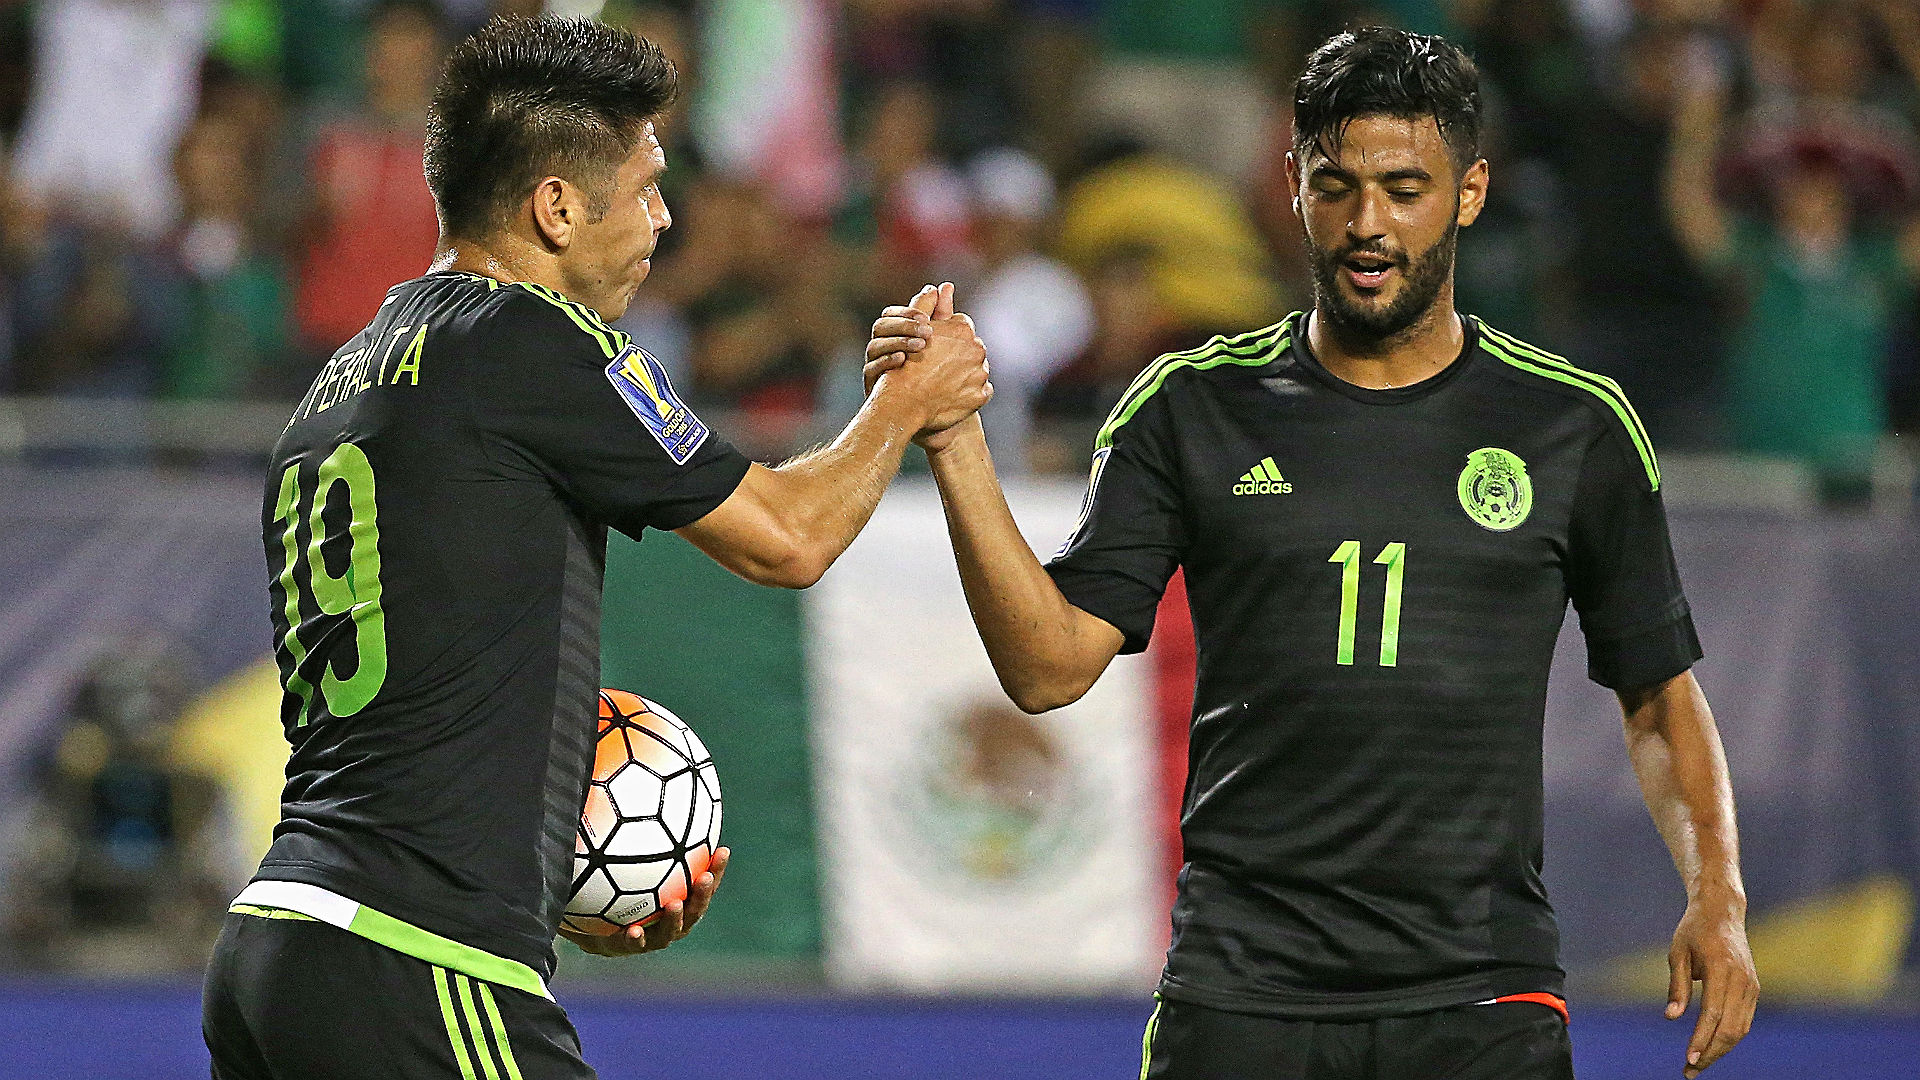 Mexico vs. Costa Rica odds and pick – Goals aplenty in New Jersey